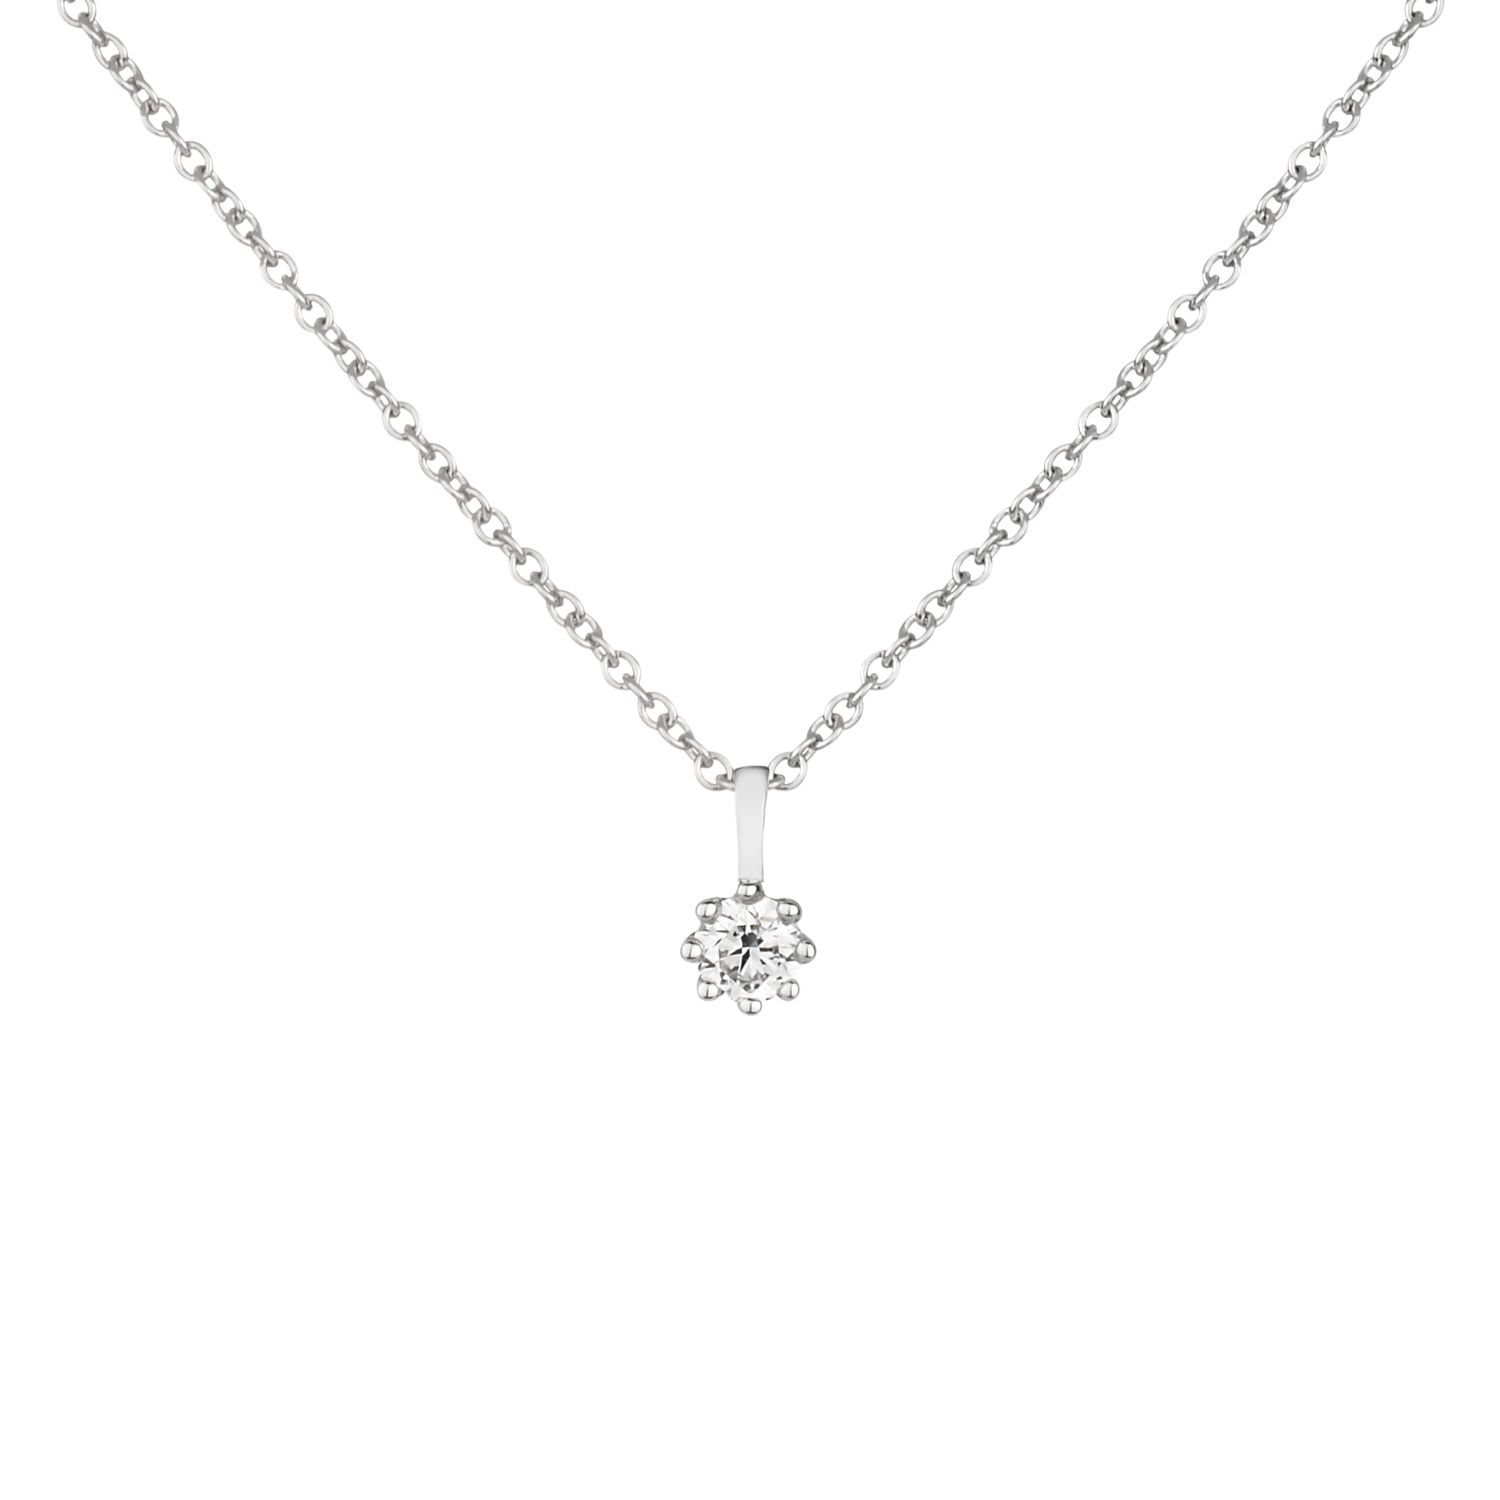 Dinny Hall 18k White Gold Diamond Pendant Necklace